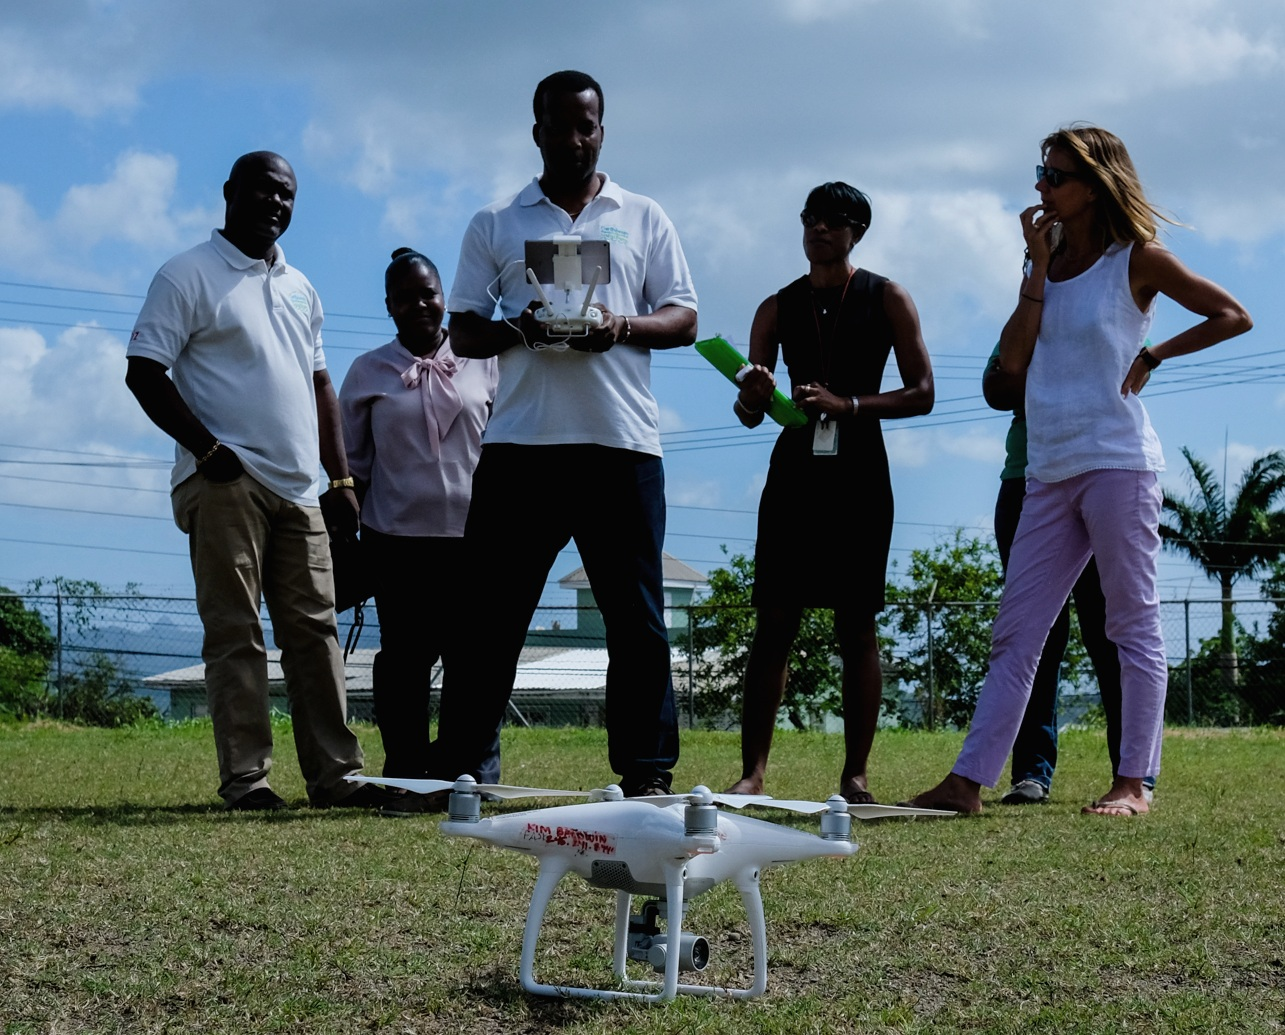 CARPA CATS St Lucia Drone Training Aug 2018